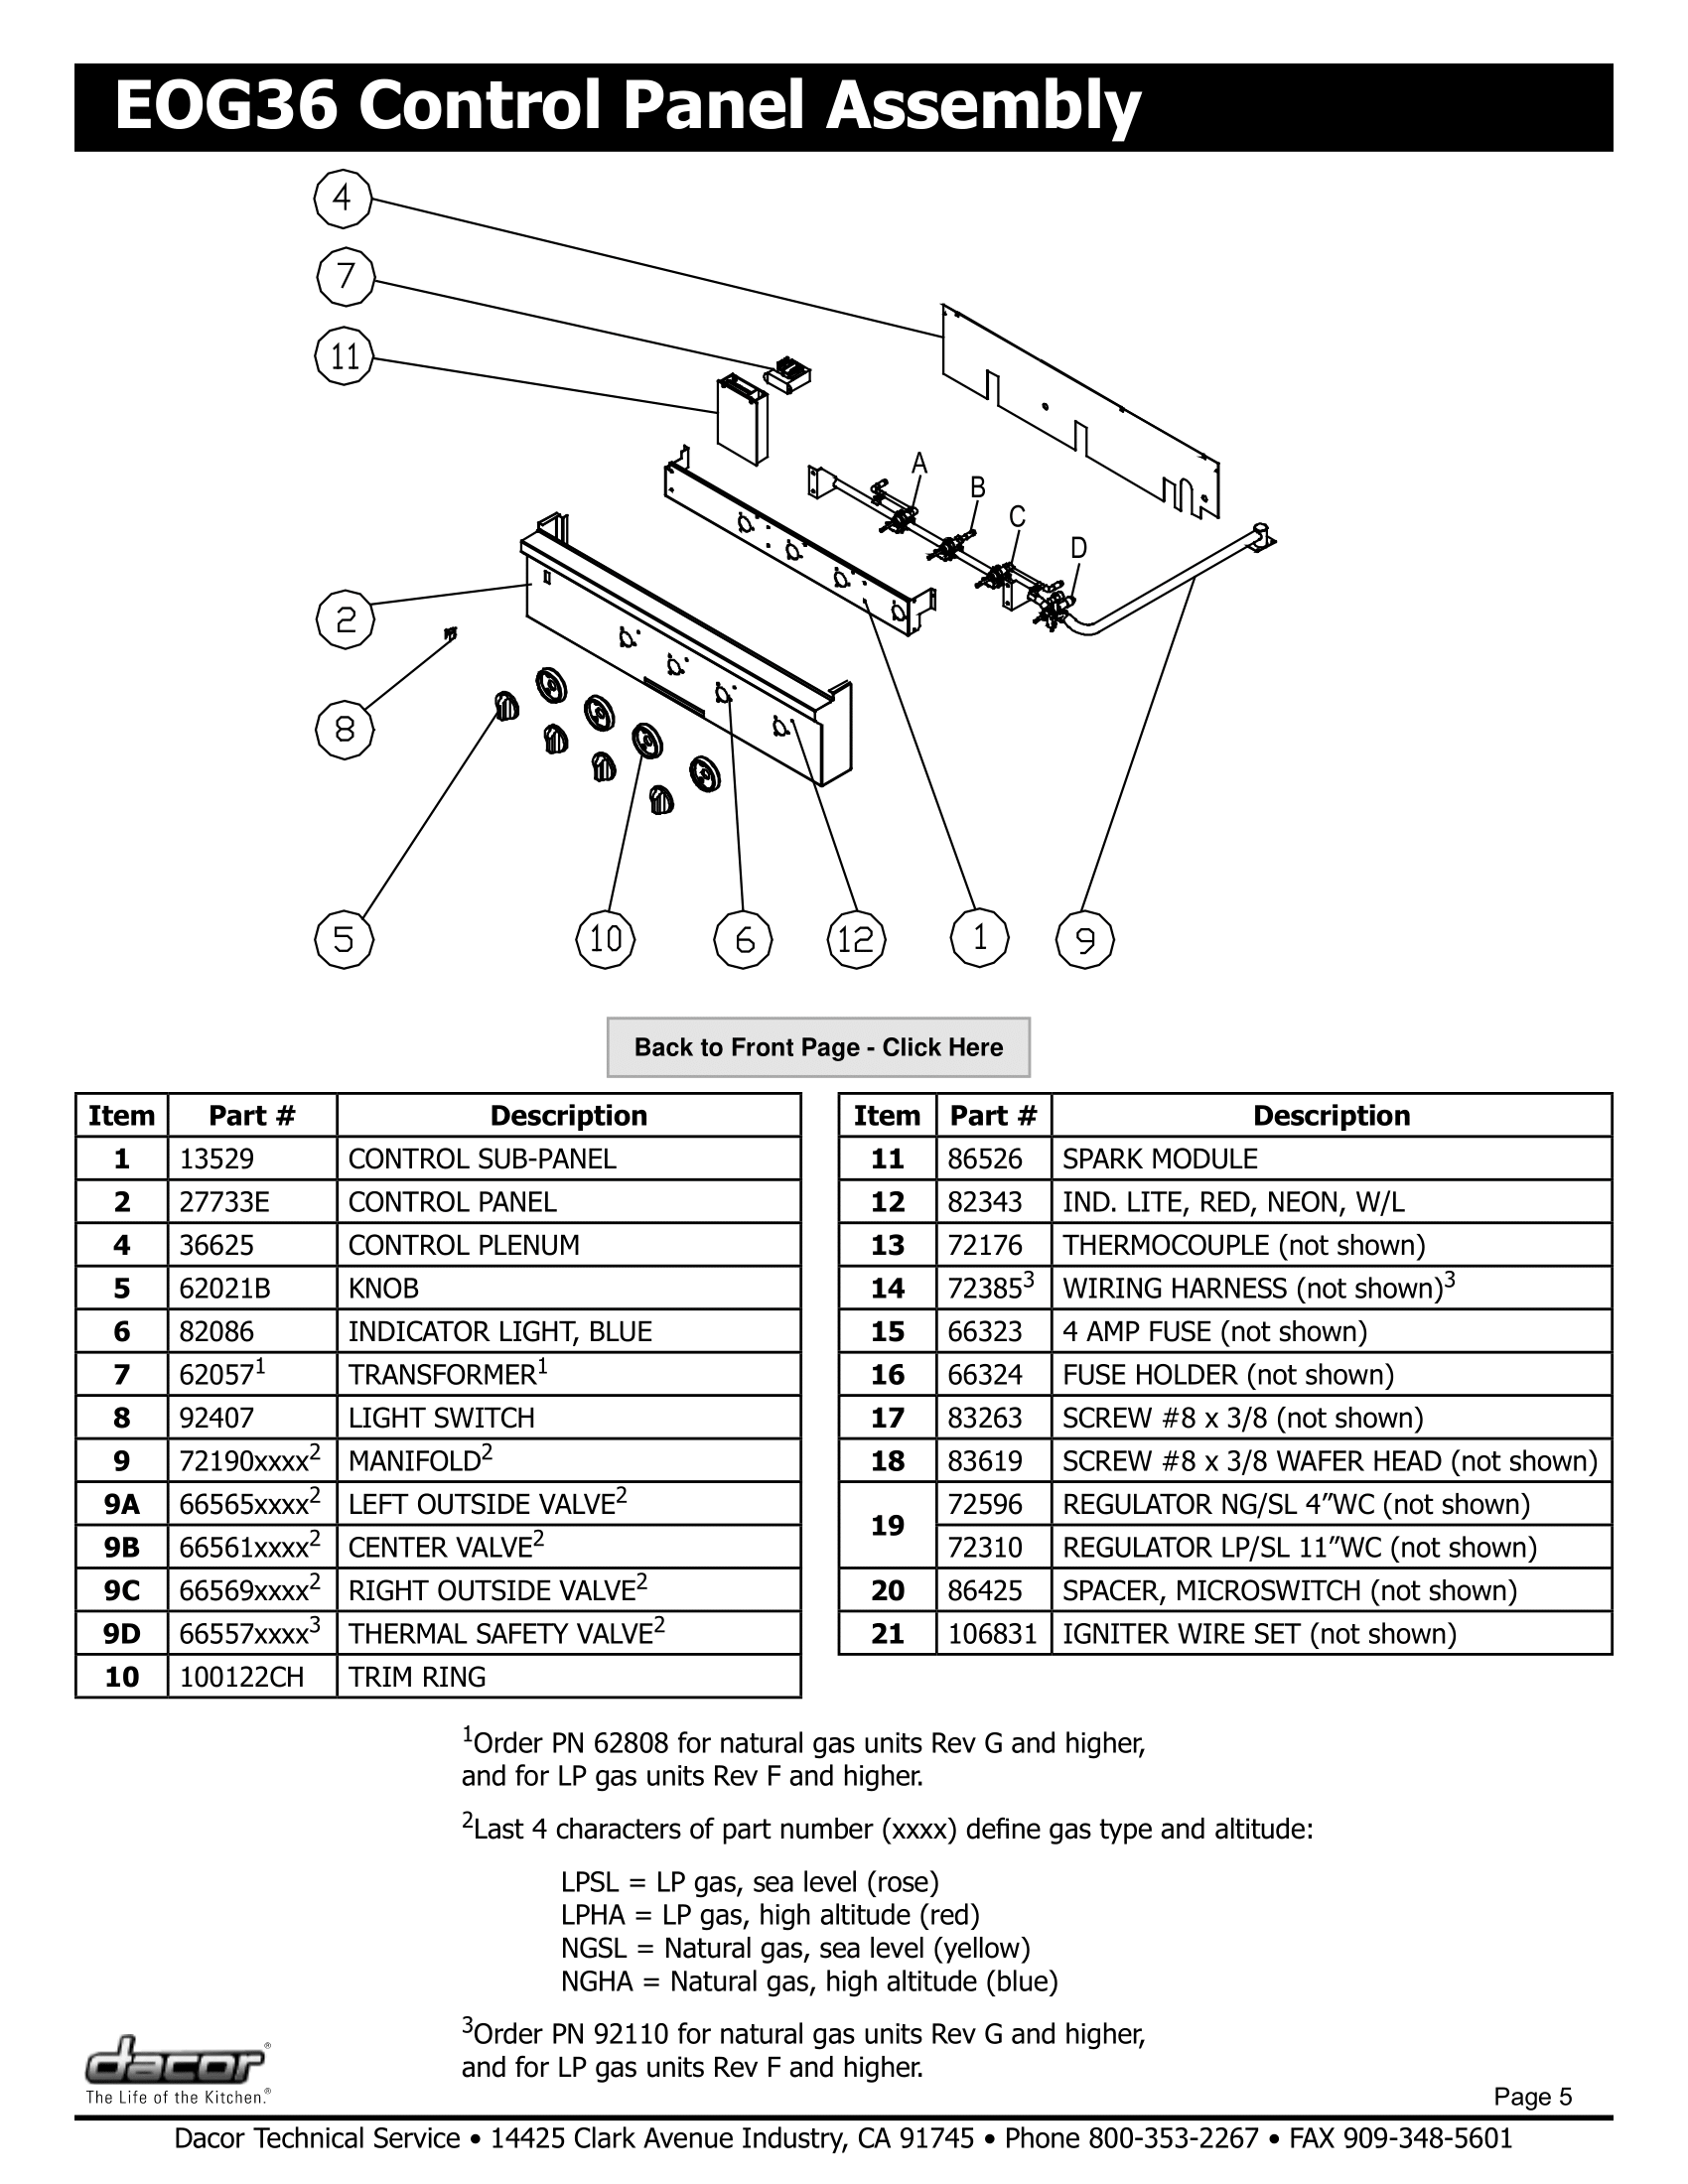 Dacor EOG36 Control Panel Assembly Schematic